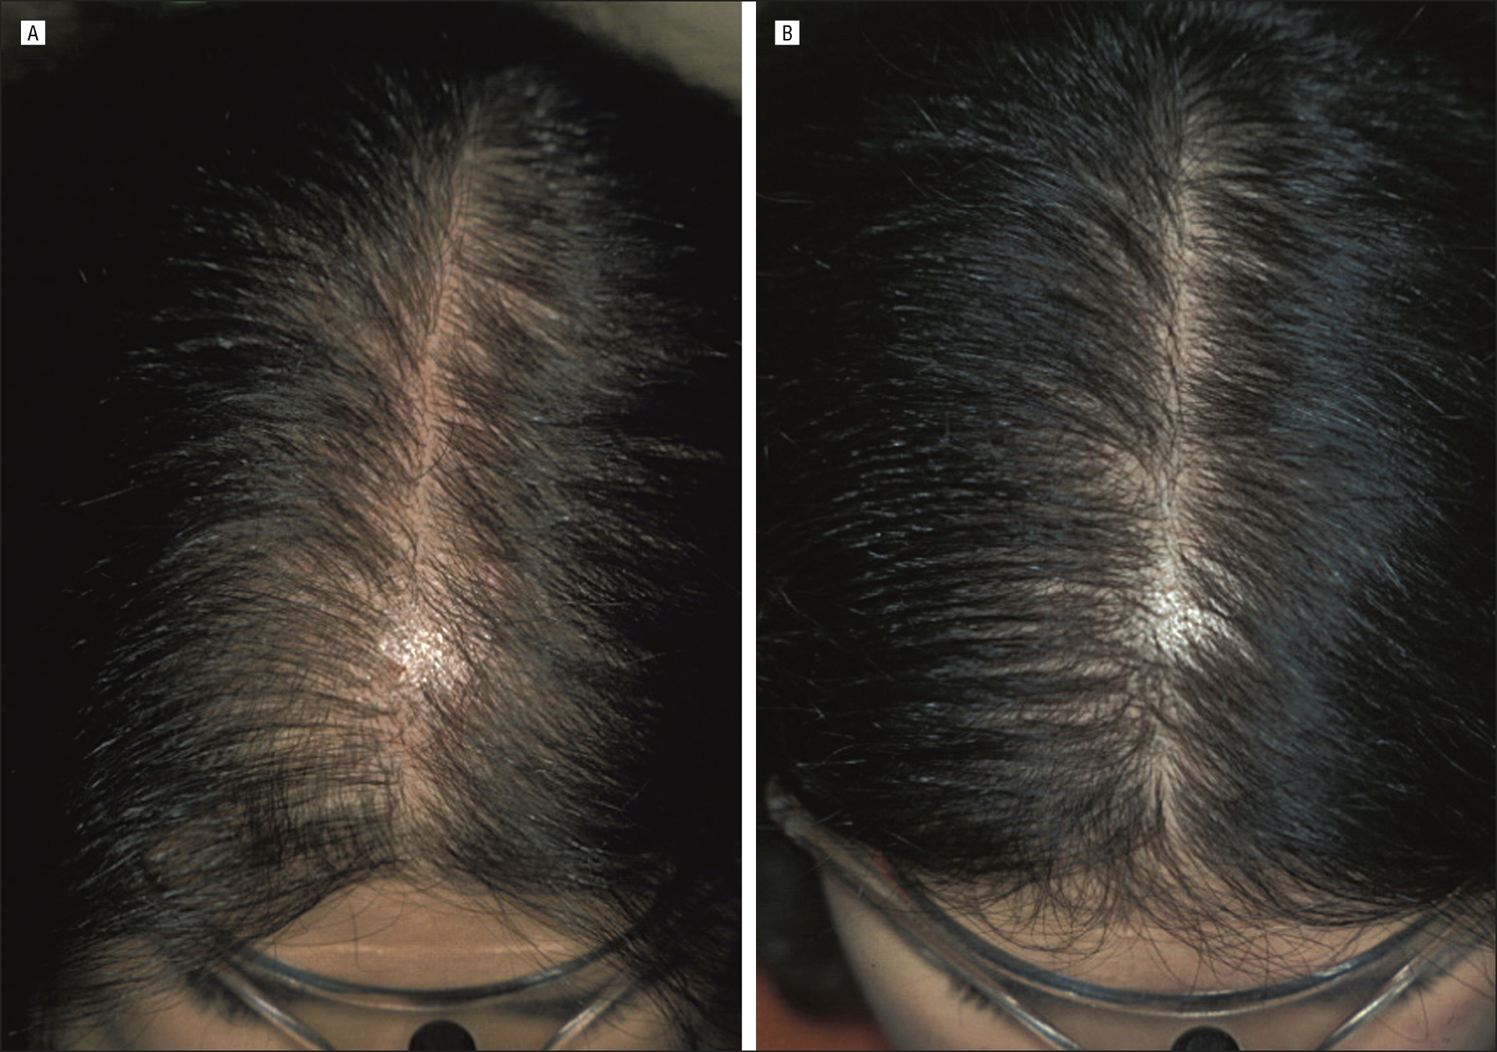 Finasteride Treatment Of Female Pattern Hair Loss Clinical